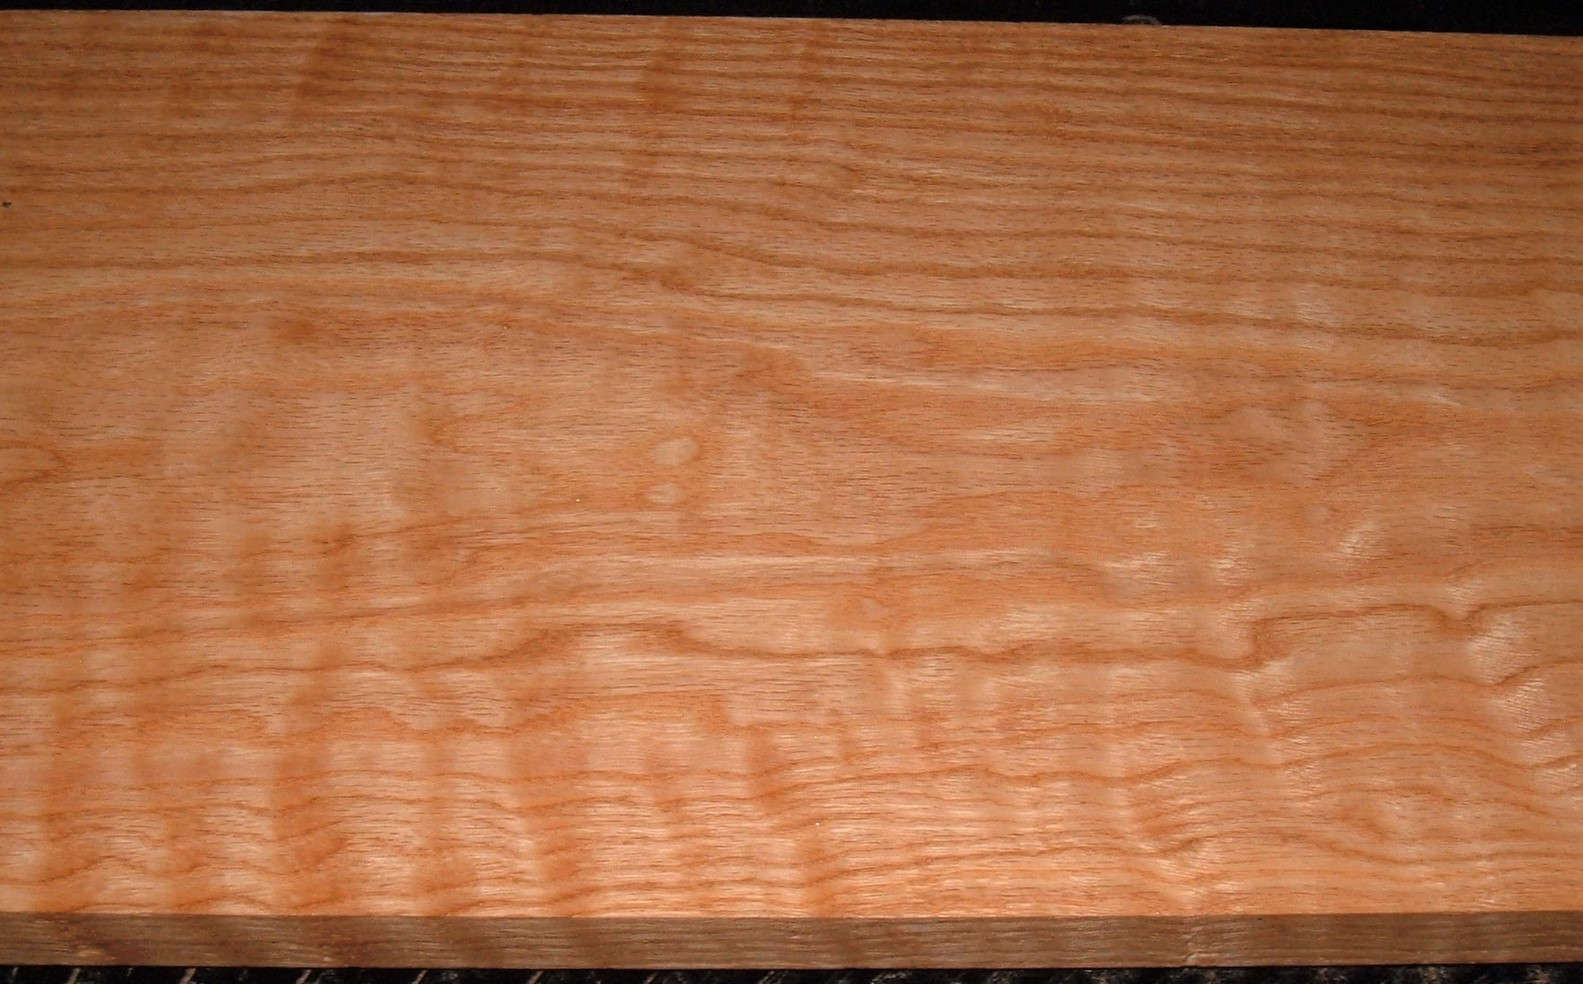 RO2102-18J, Curly Figured Tiger Red Oak, 1x11-1/8x83